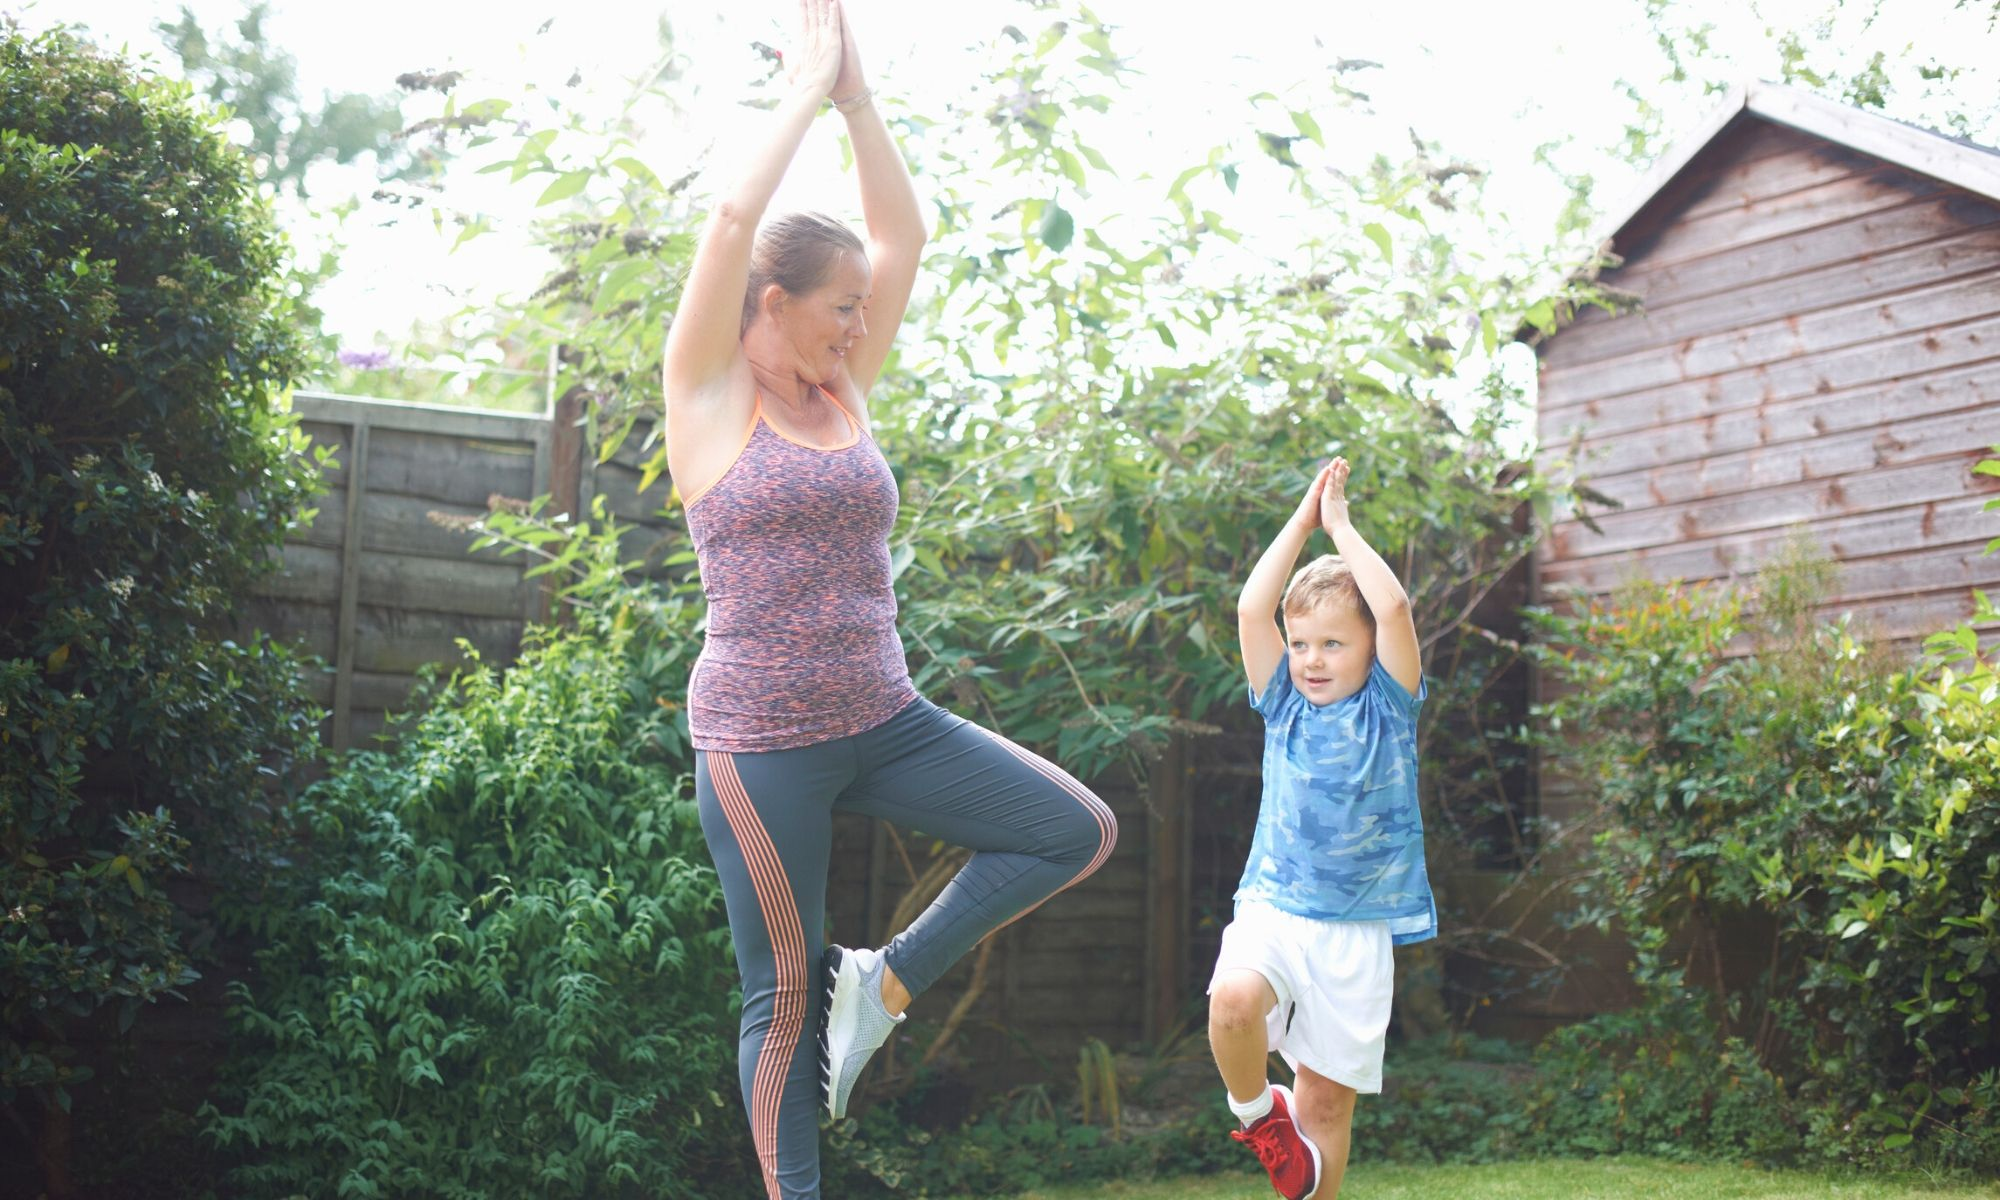 adult and child doing yoga poses outside